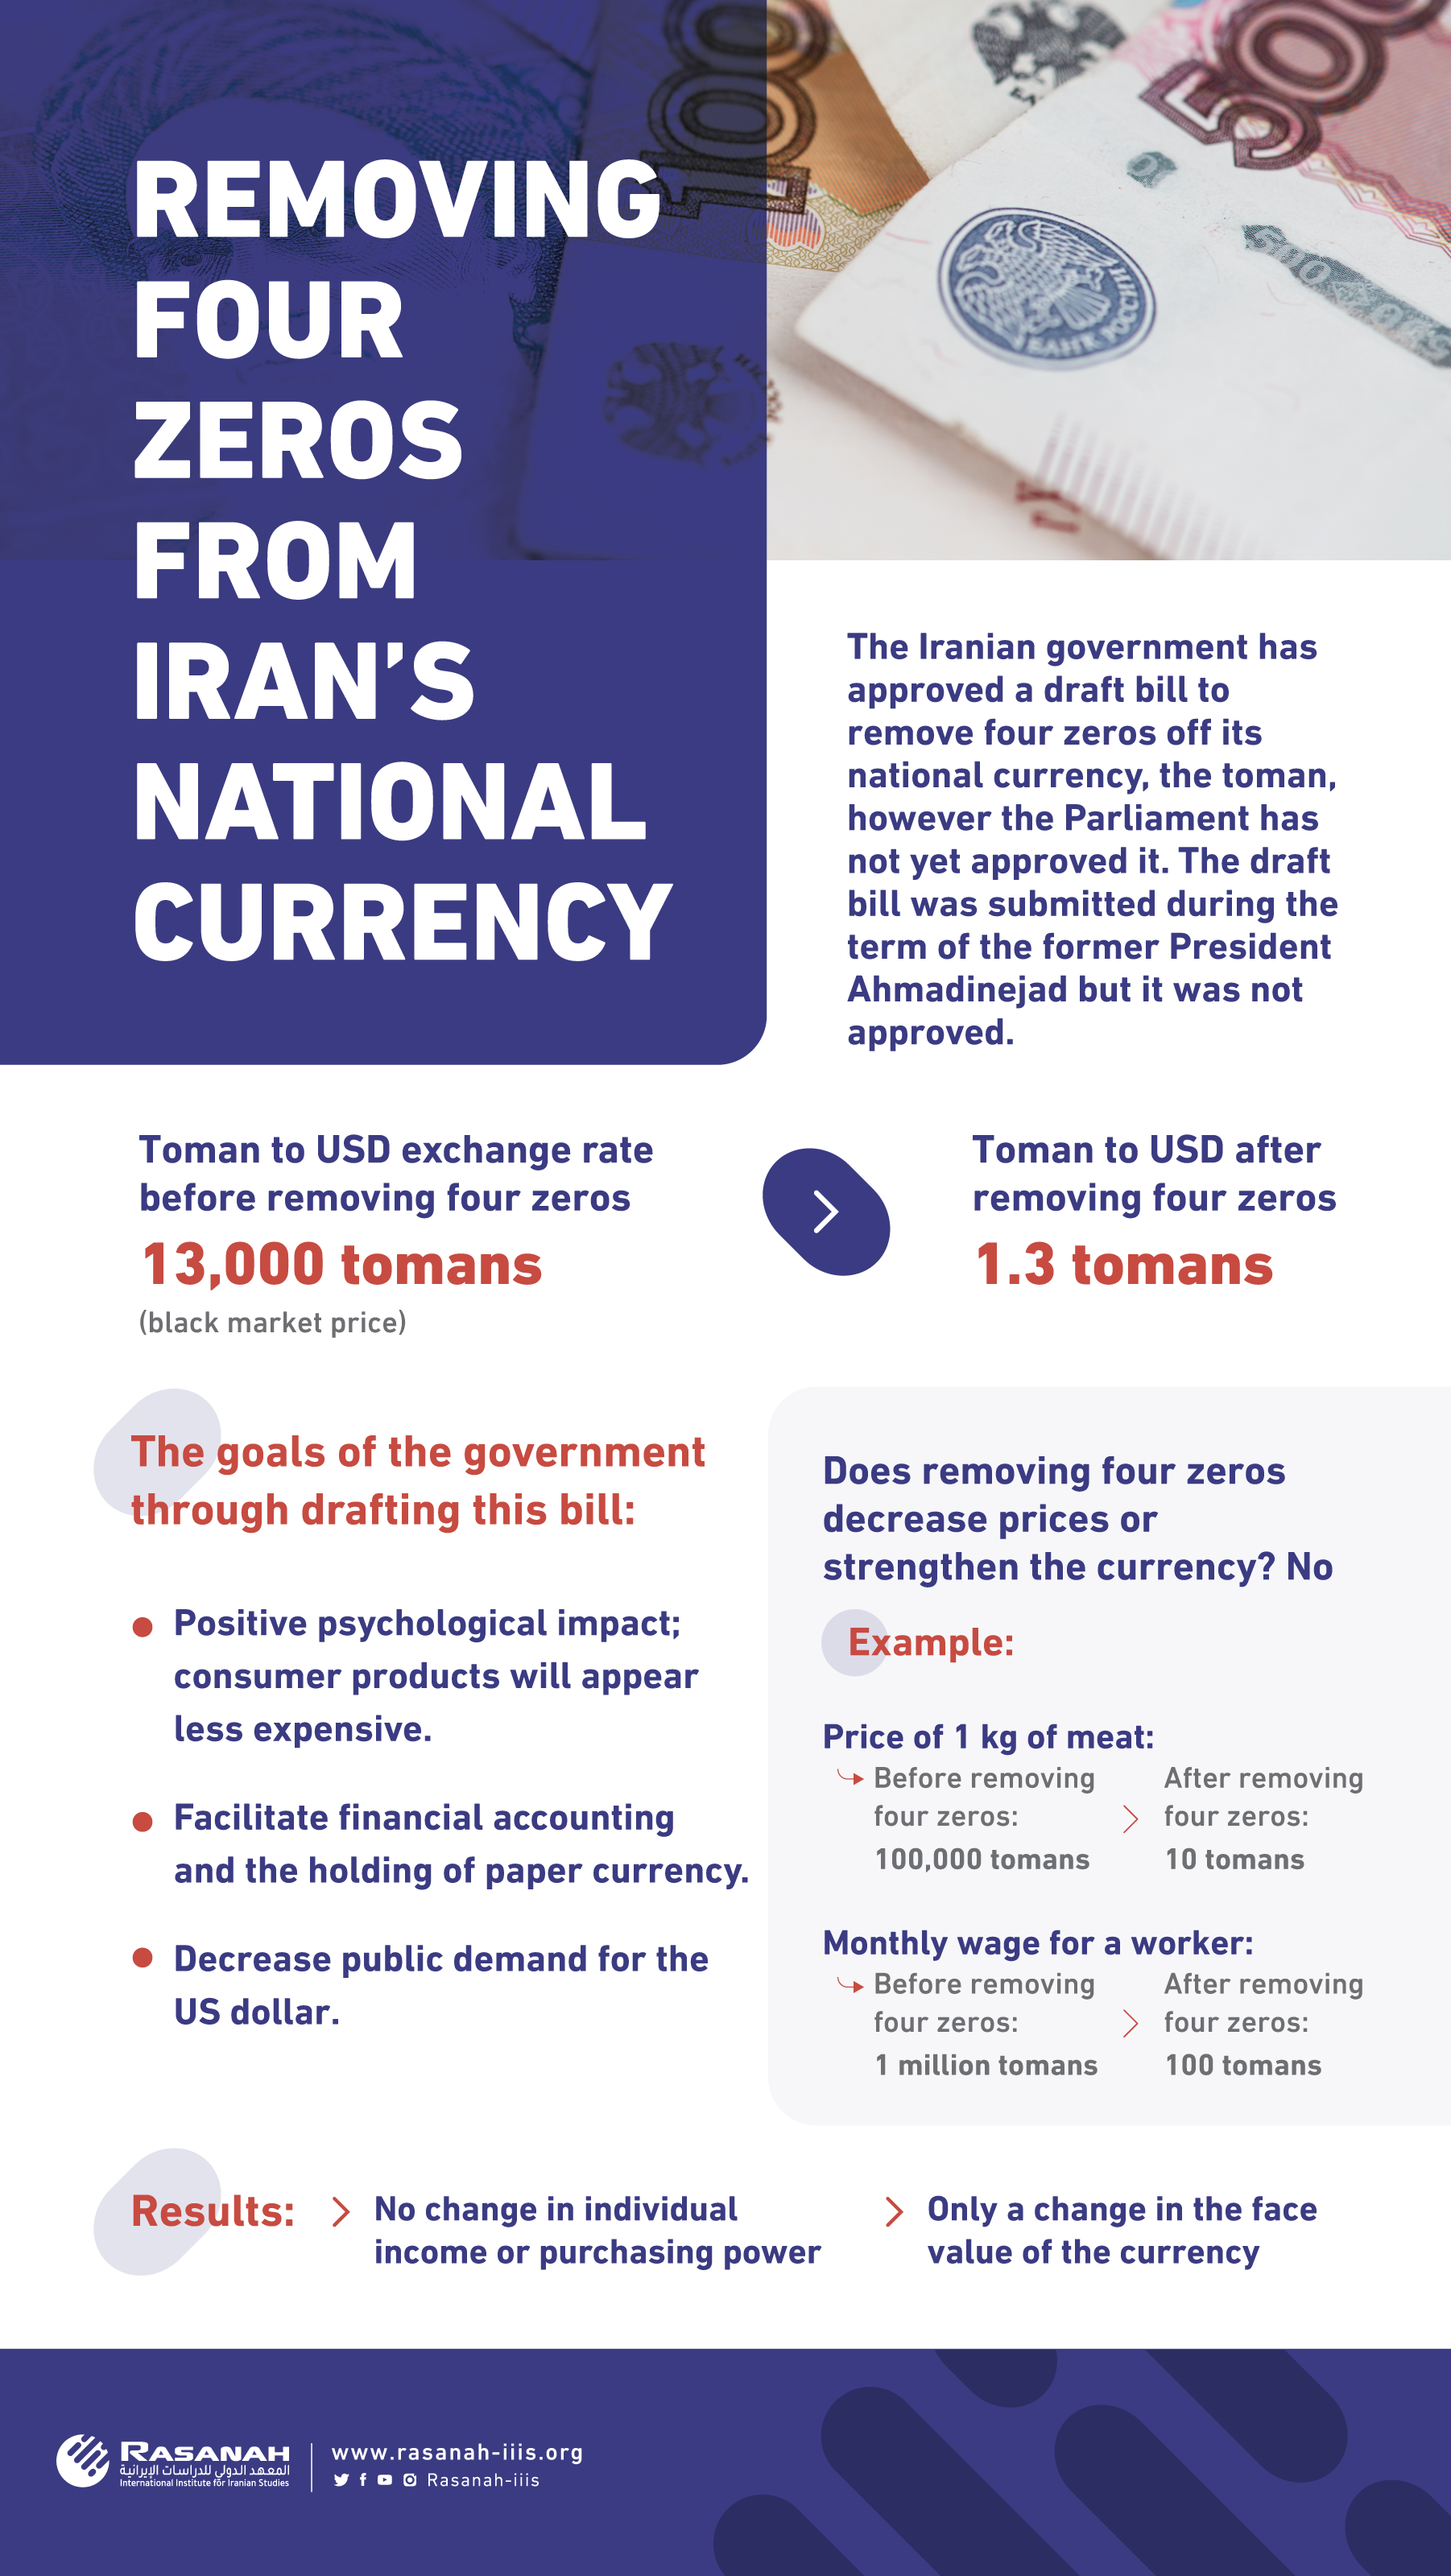 Why did Iran remove four zeros from its national currency